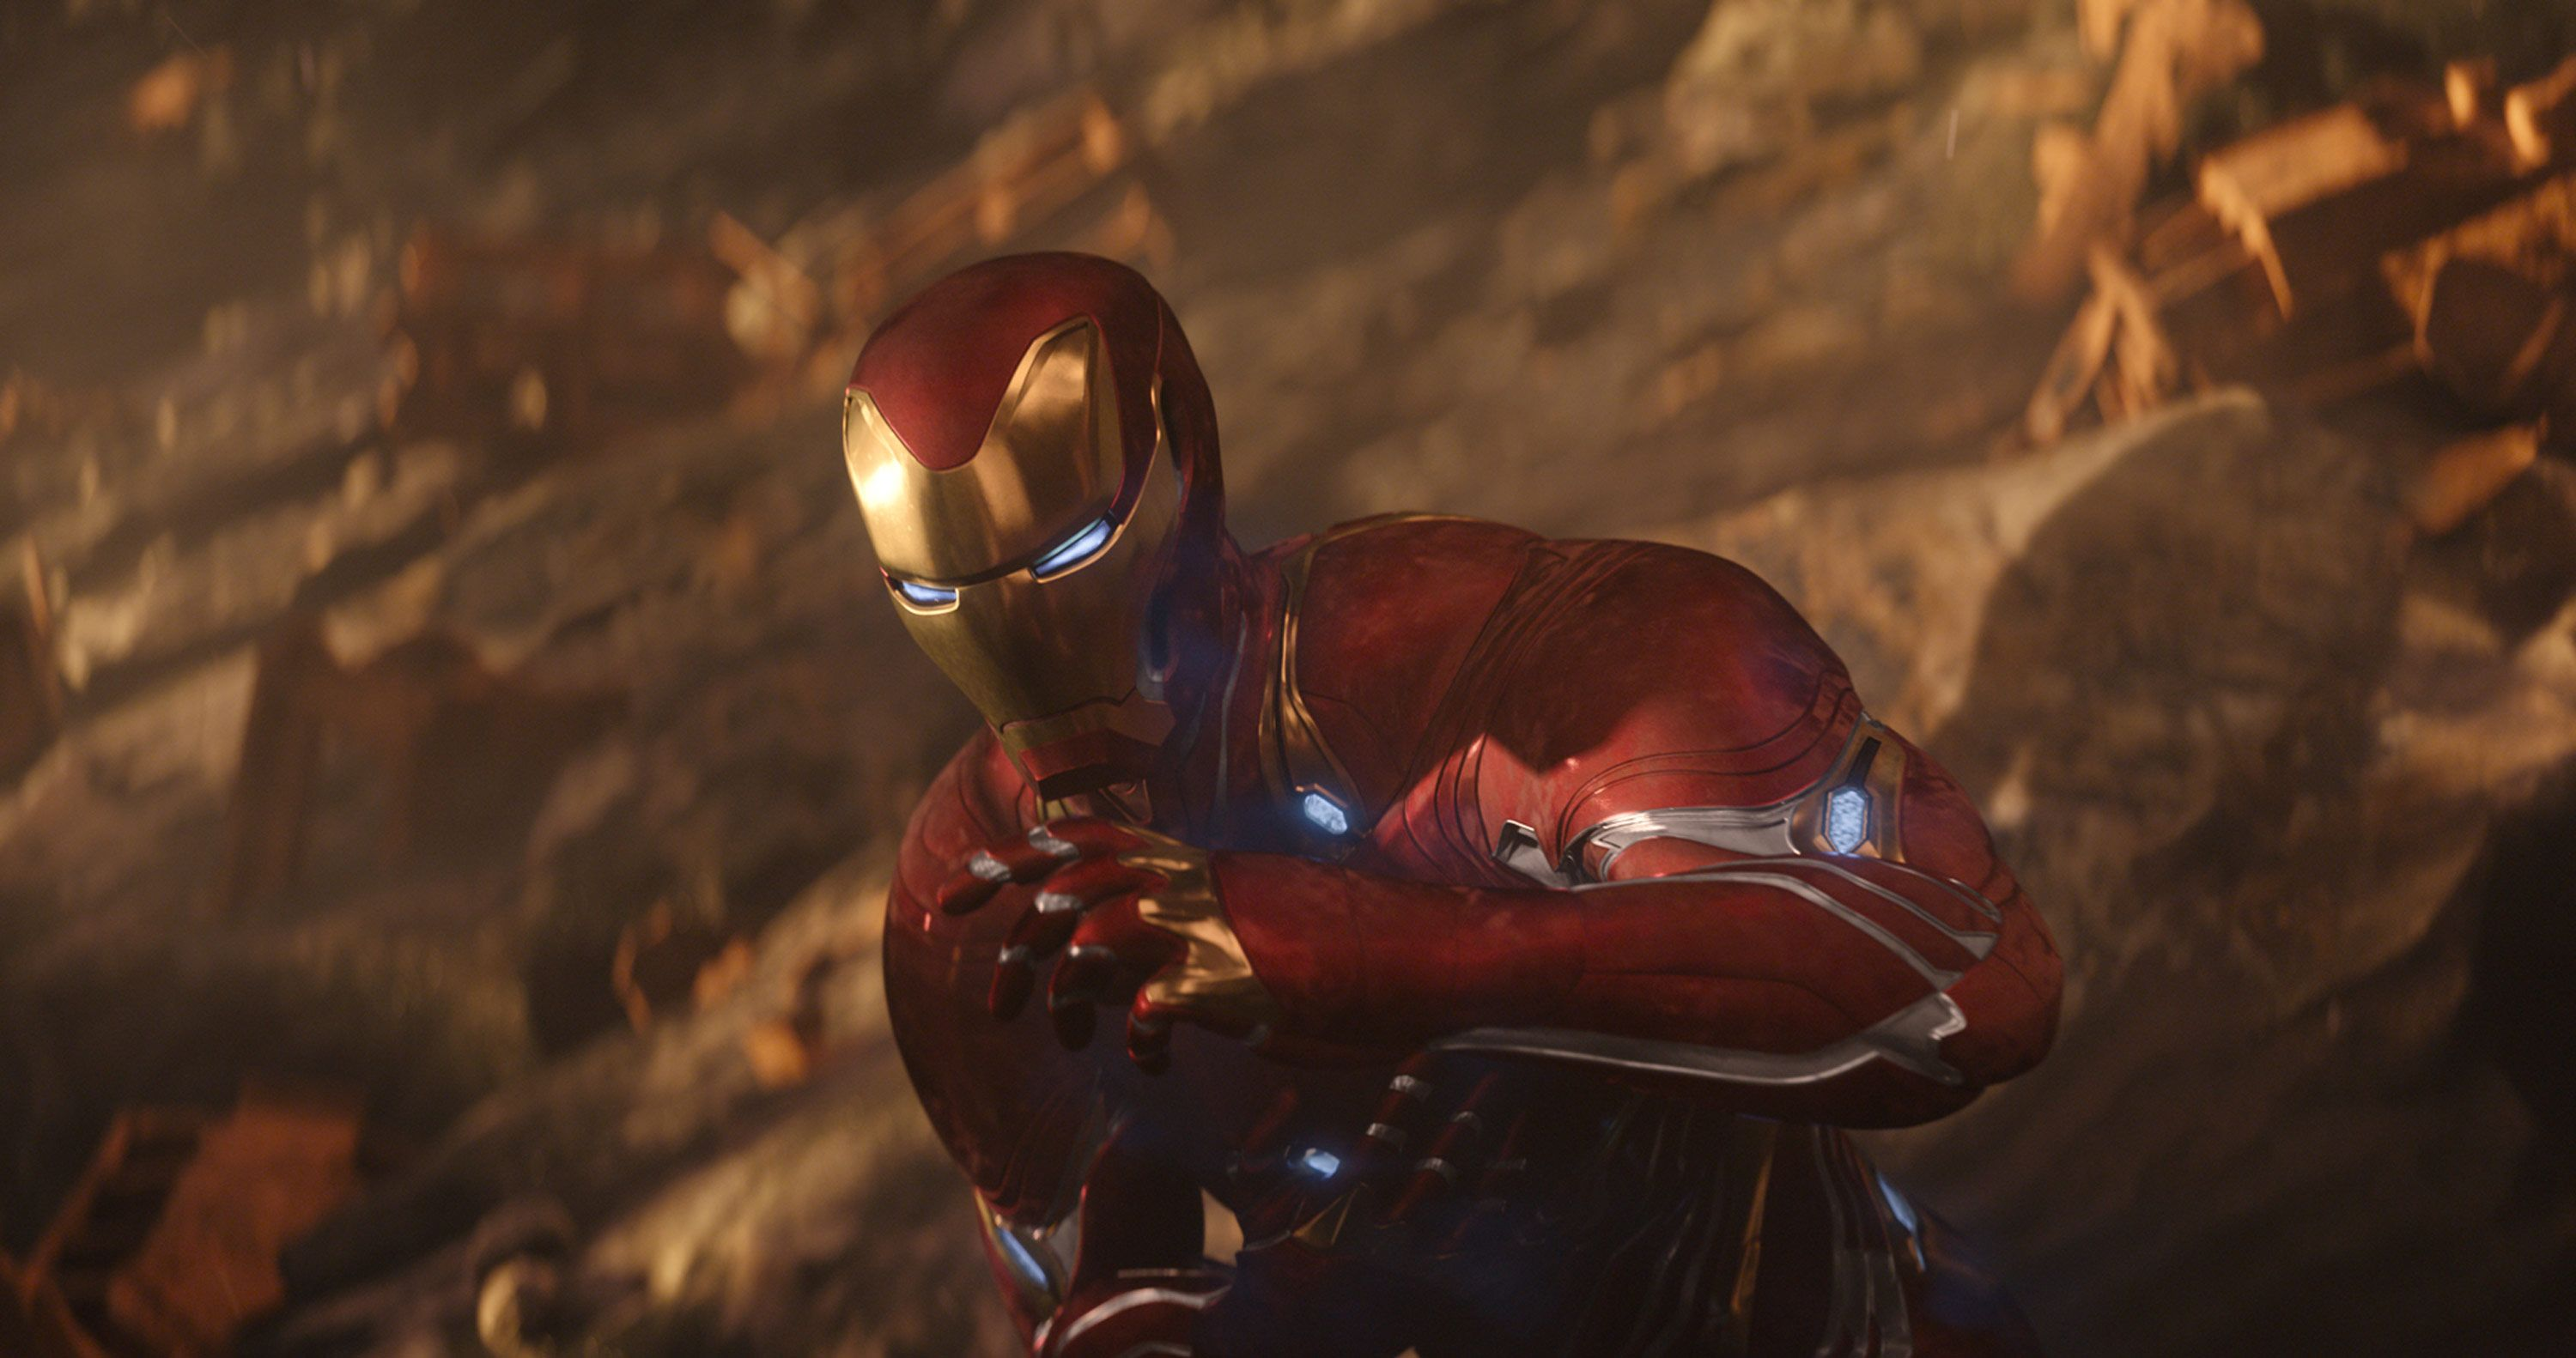 Iron Man 3 features an adorable festive detail you probably